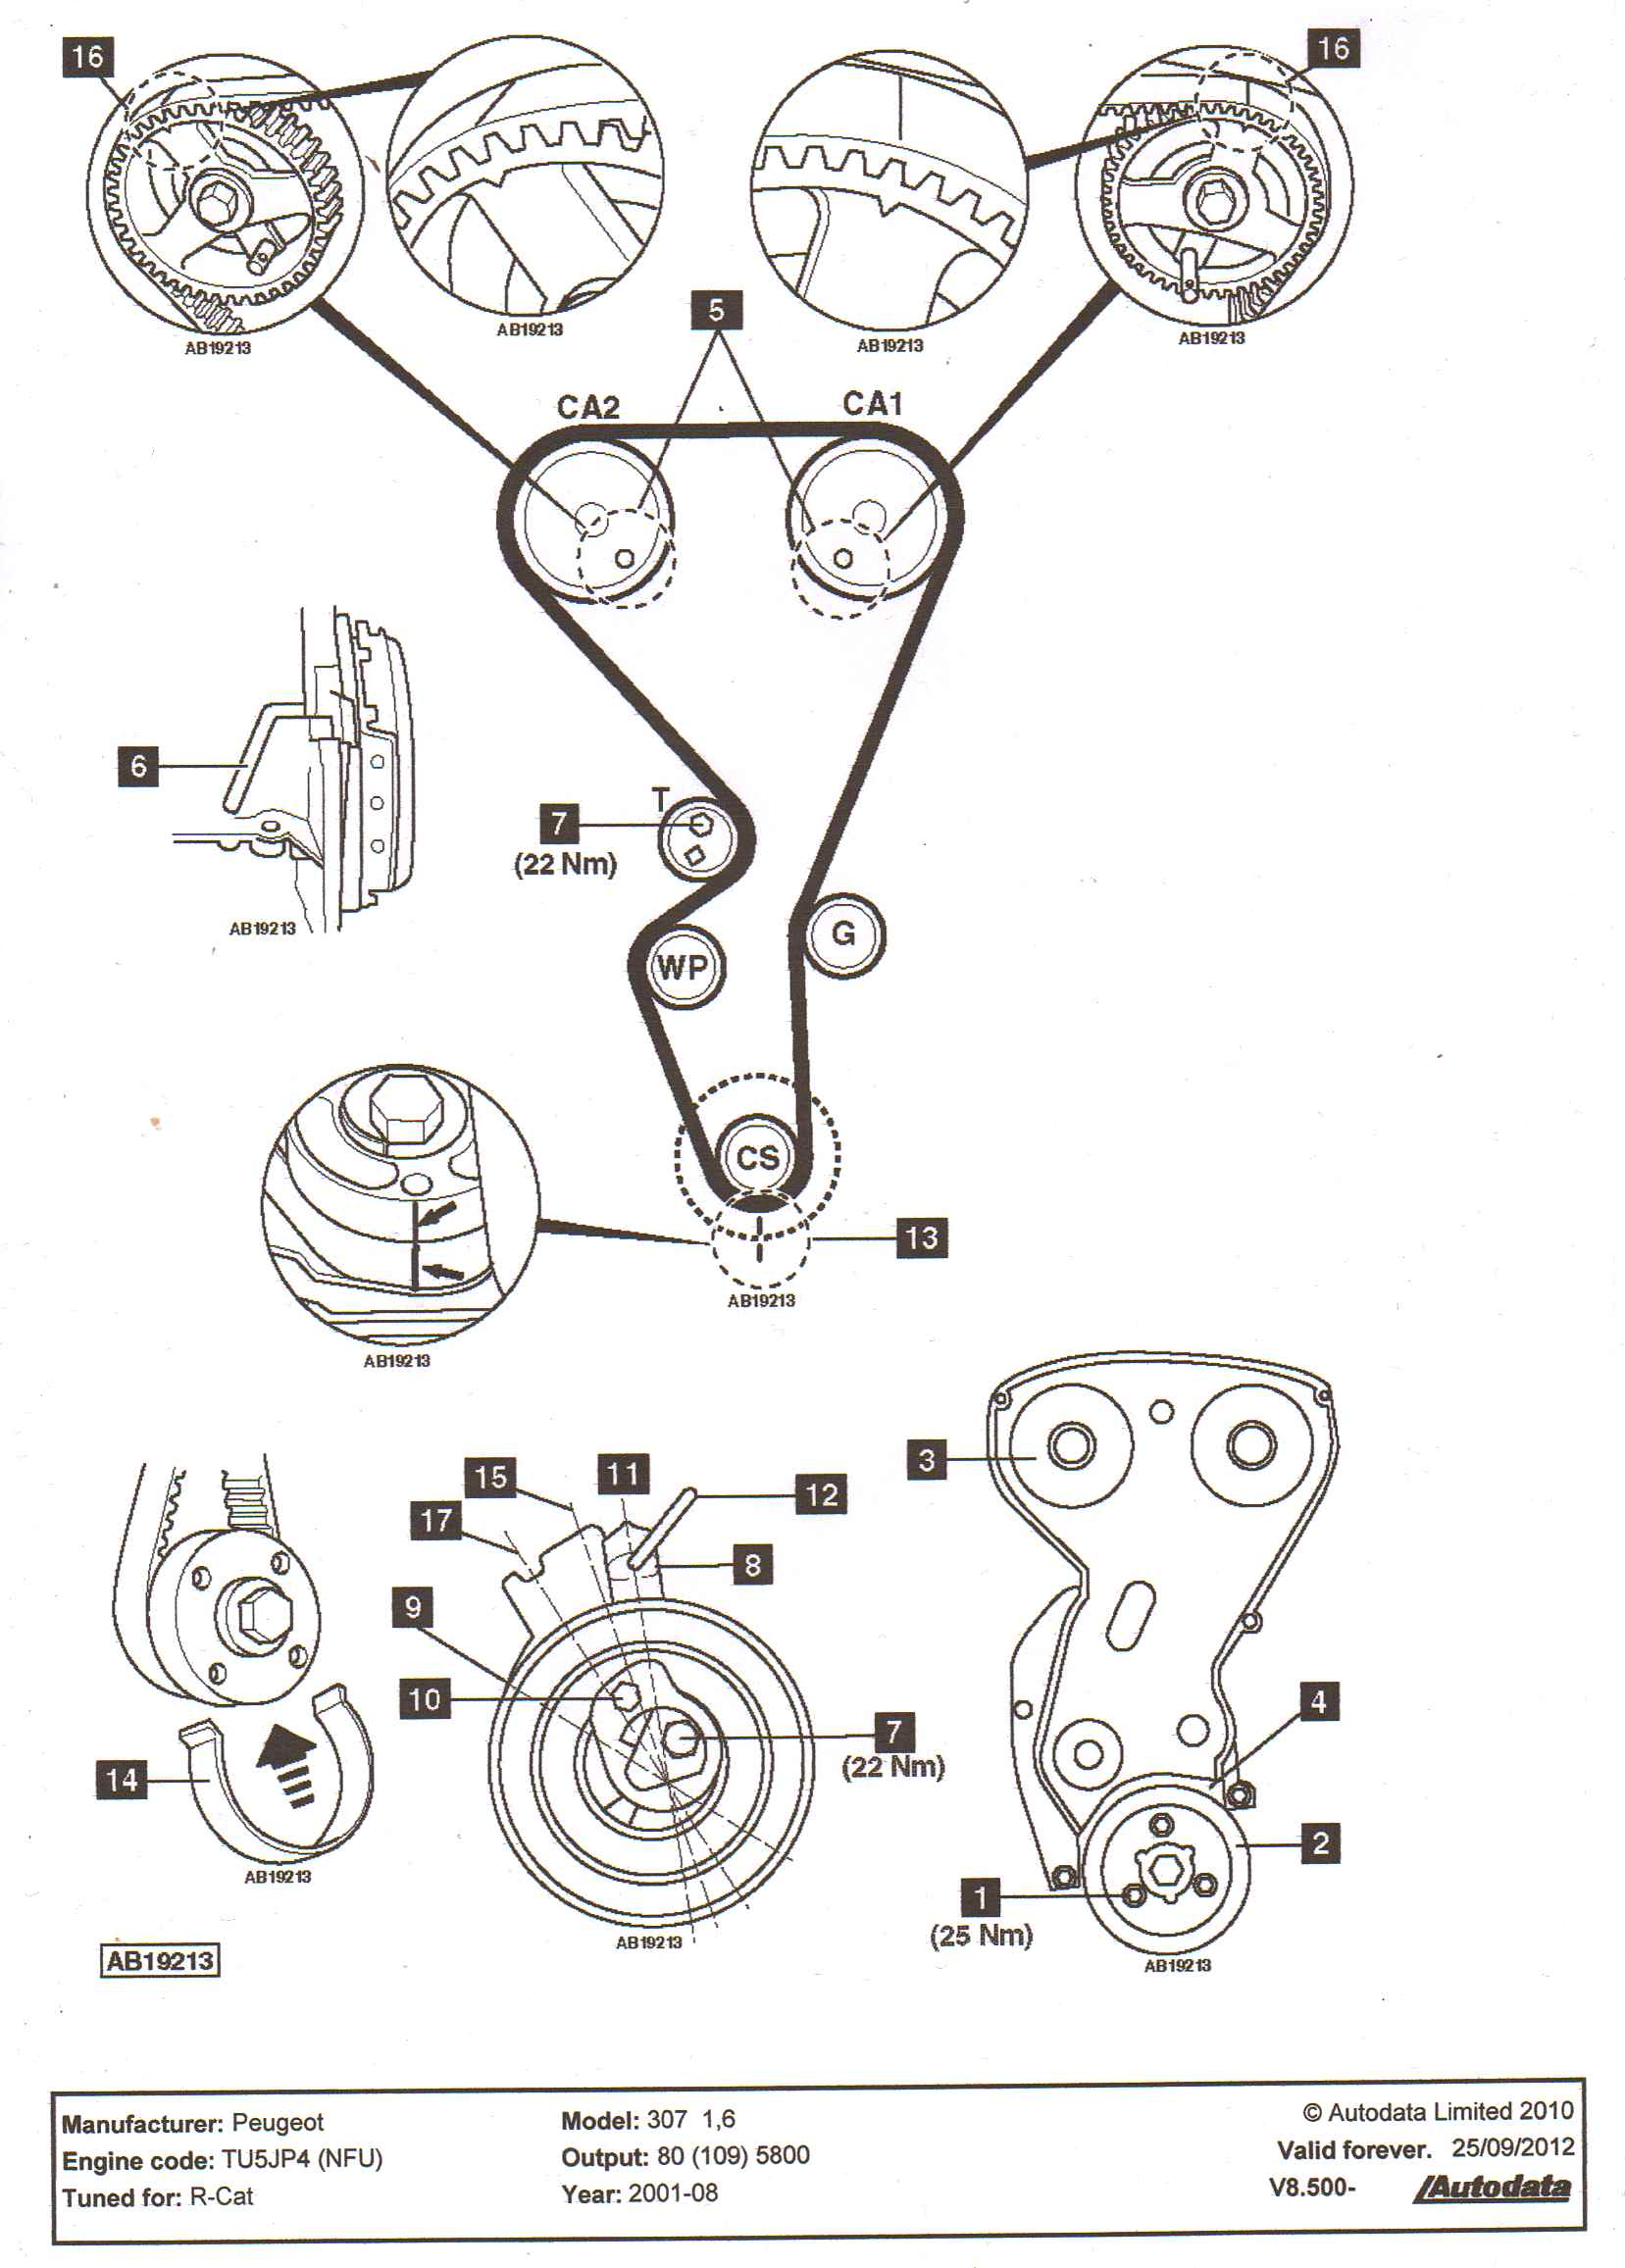 i looking for timing diagram for replacement camshaft belt